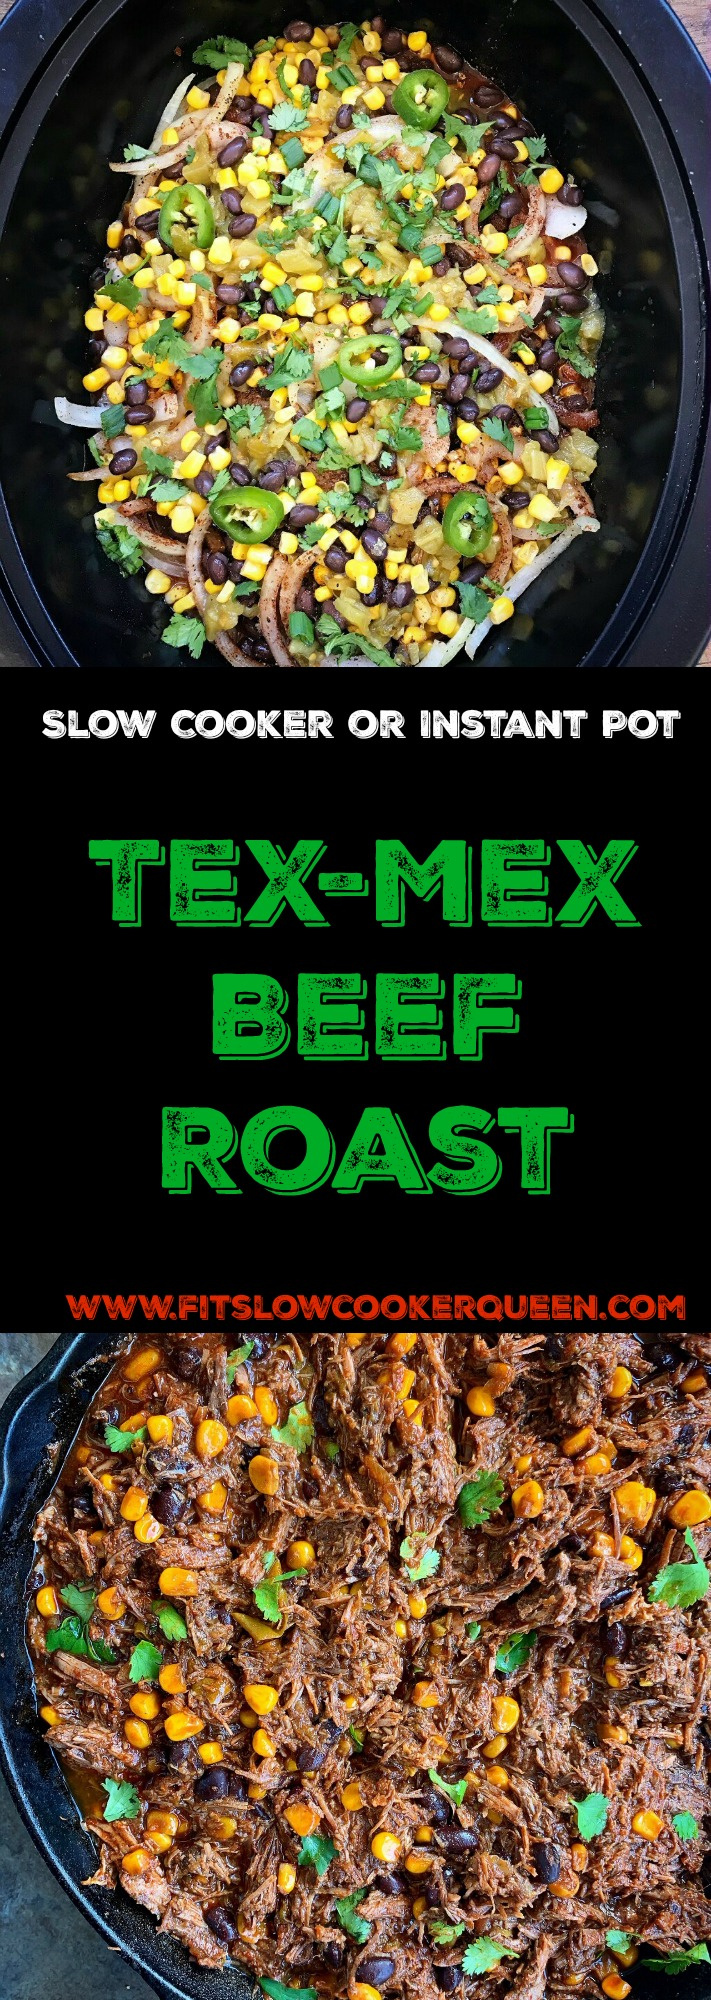 Tex-Mex beef will turn your next dinner into a fiesta! Cooked in the slow cooker or Instant Pot, you can use this versatile beef in a variety of recipes.